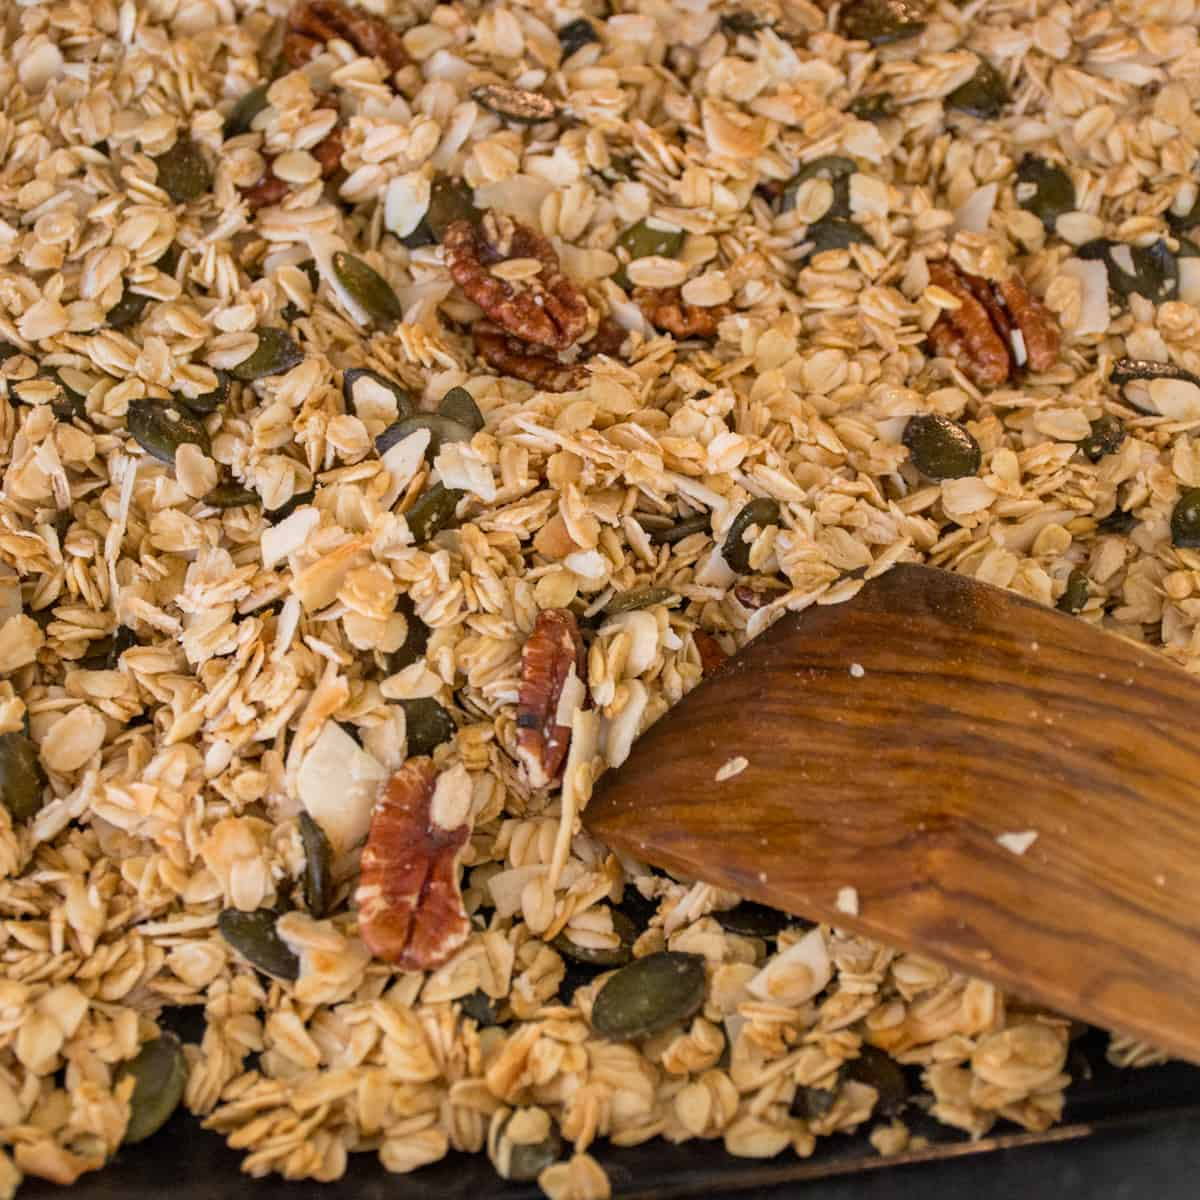 The granola gets stirred with a wooden spatula.